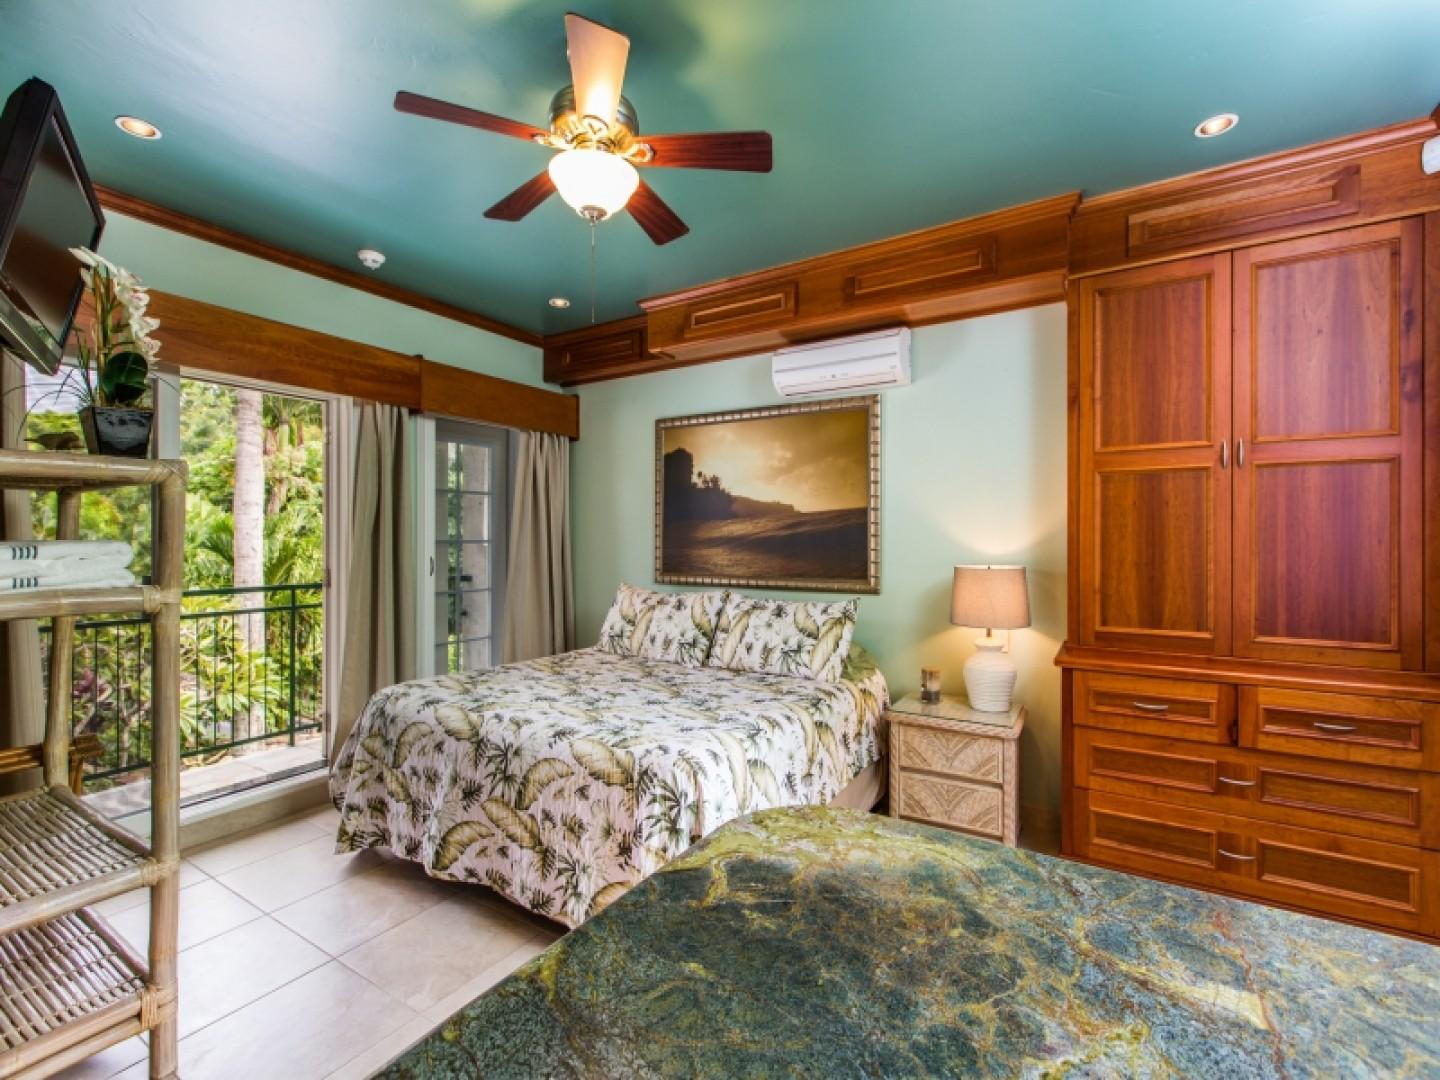 Private suite with king-size bed and lanai.